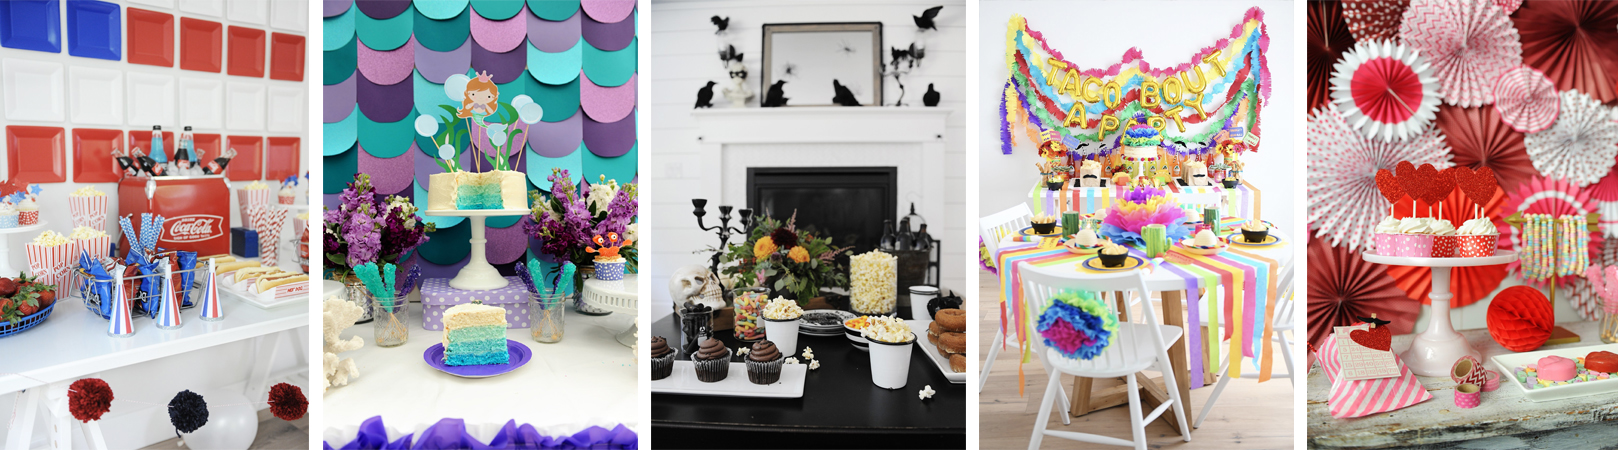 Party ideas collage footer 1